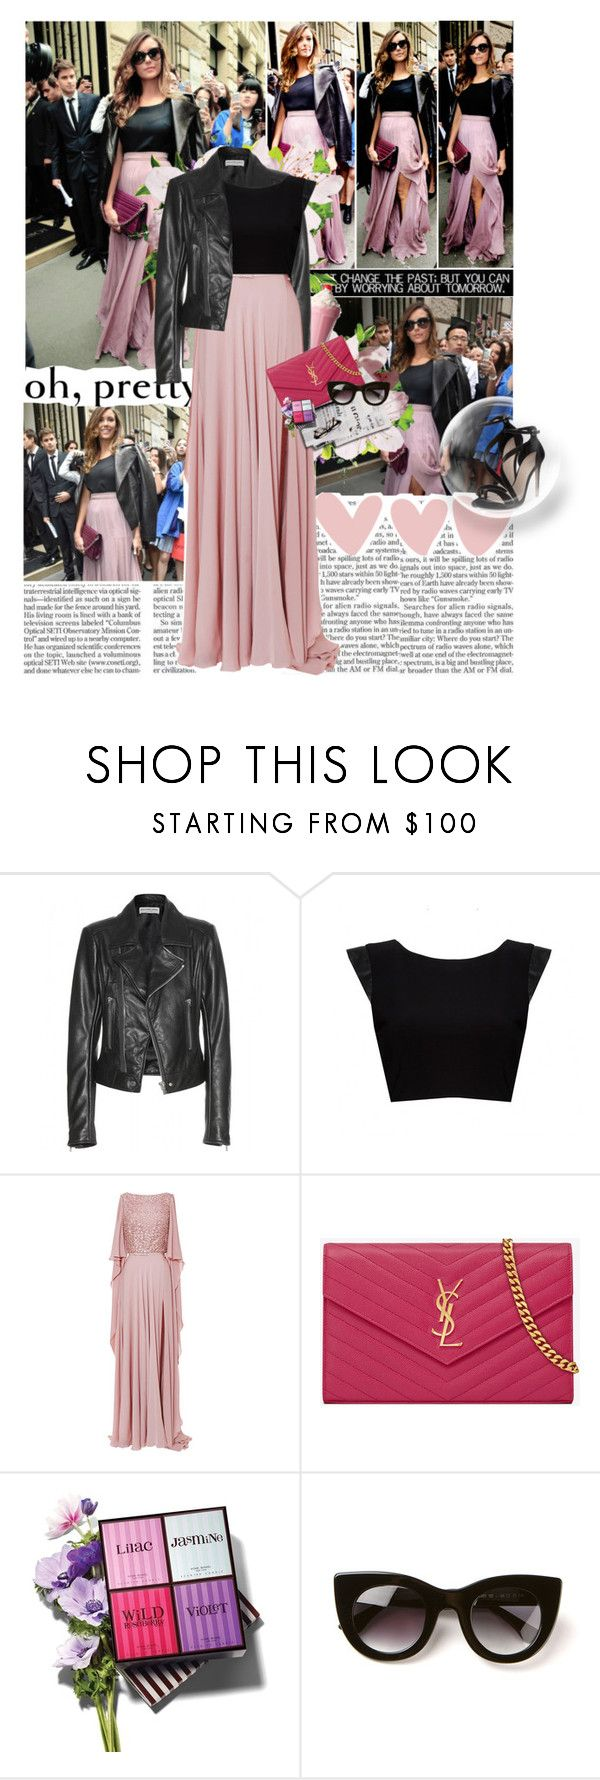 """Get the Look: Nina Dobrev (Paris Fashion Week)"" by jesssilva ❤ liked on Polyvore featuring Elie Saab, Balenciaga, Alice + Olivia, 7 For All Mankind, Yves Saint Laurent, Henri Bendel, Thierry Lasry, Carvela, GetTheLook and NinaDobrev"